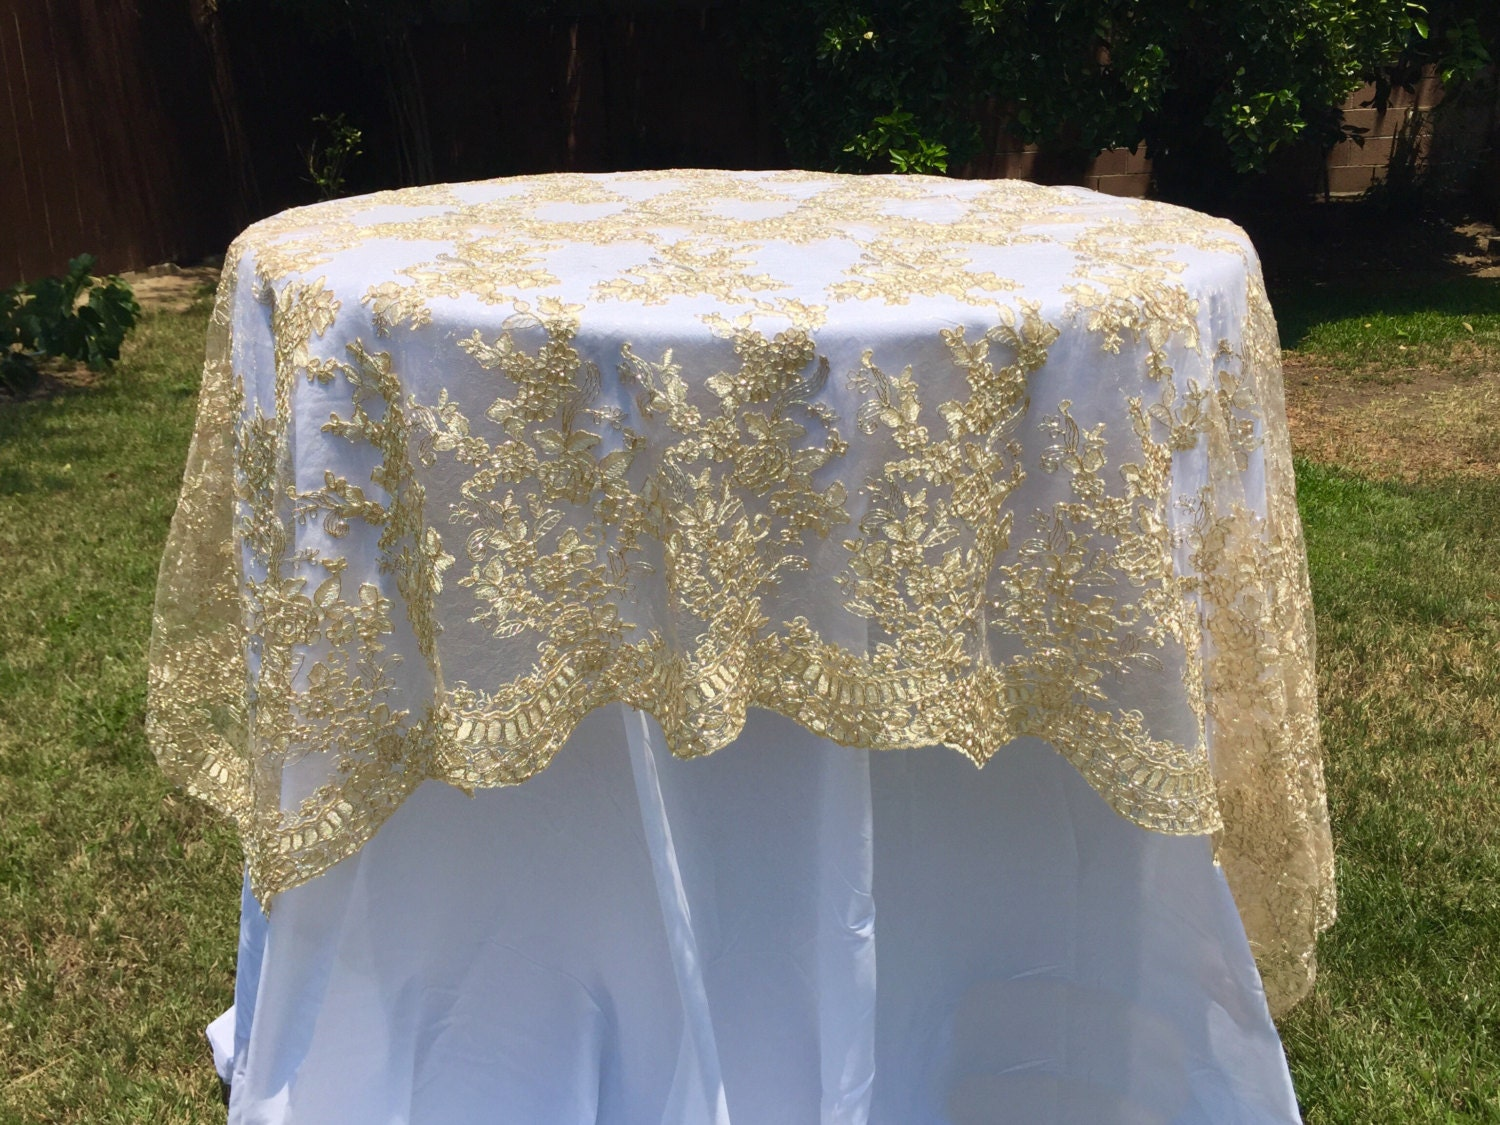 Lace Tablecloth Lace Table Overlay Table Overlay Table